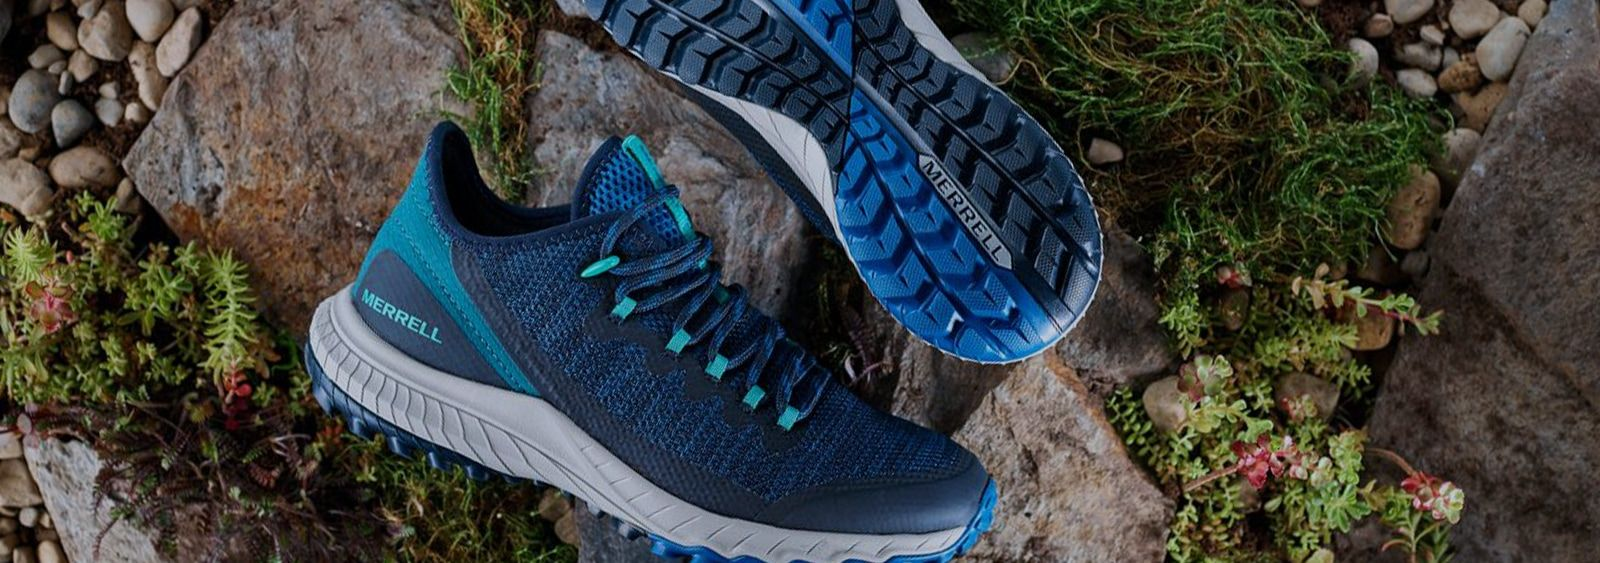 A pair of Merrell Bravada shoes on the rocks by some wildflowers